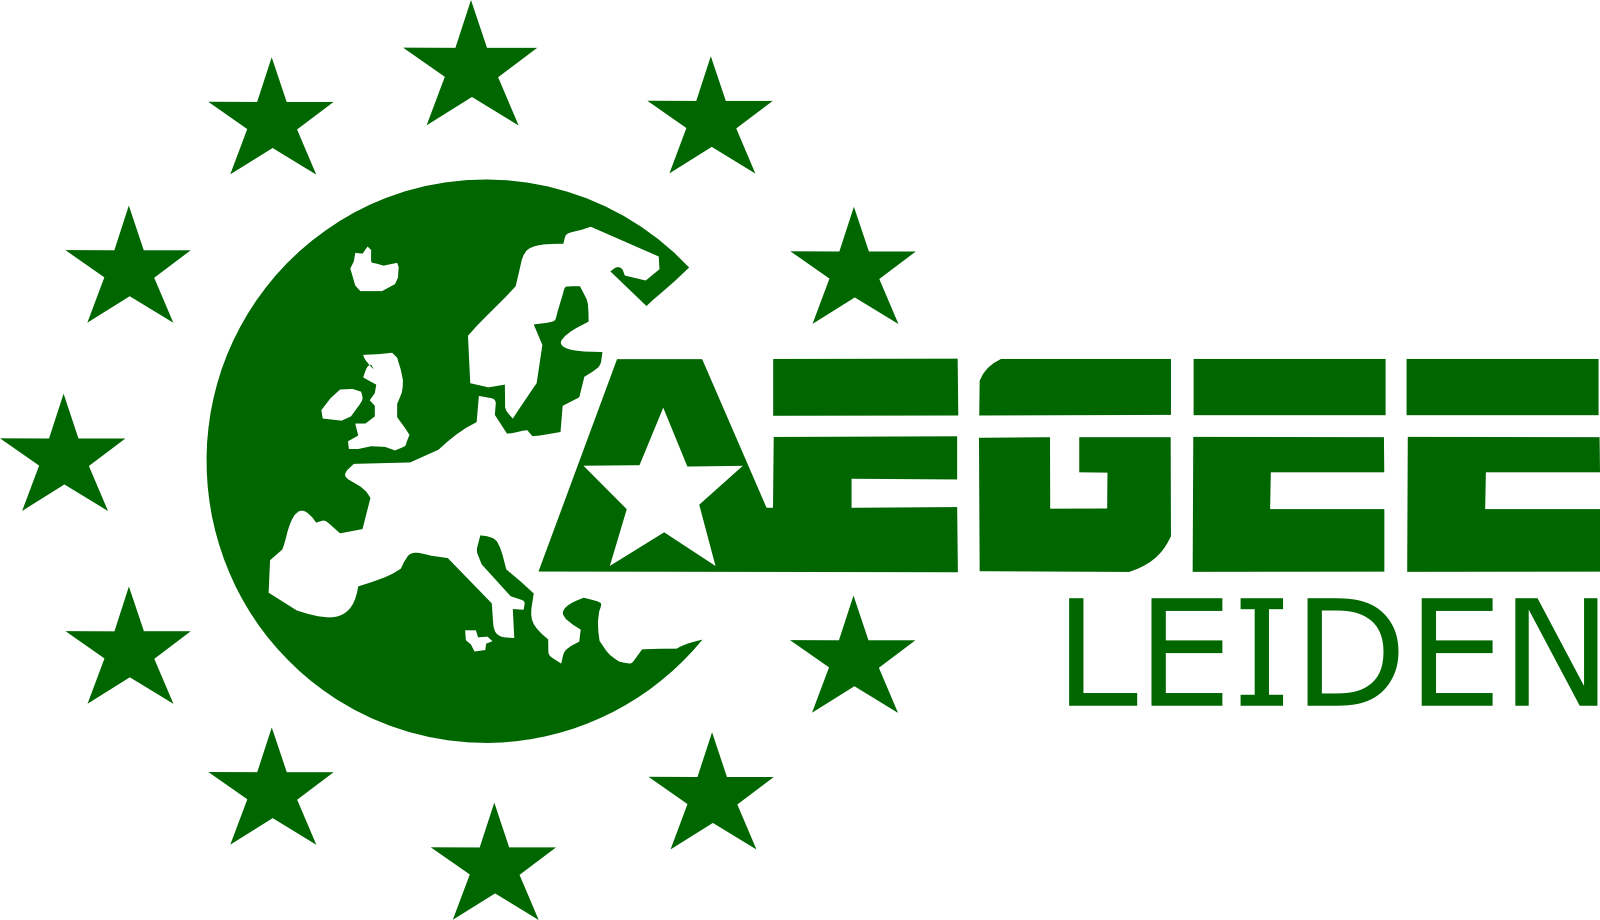 AEGEE-Leiden: one of the oldest locals of AEGEE-Europe, still alive and kicking!